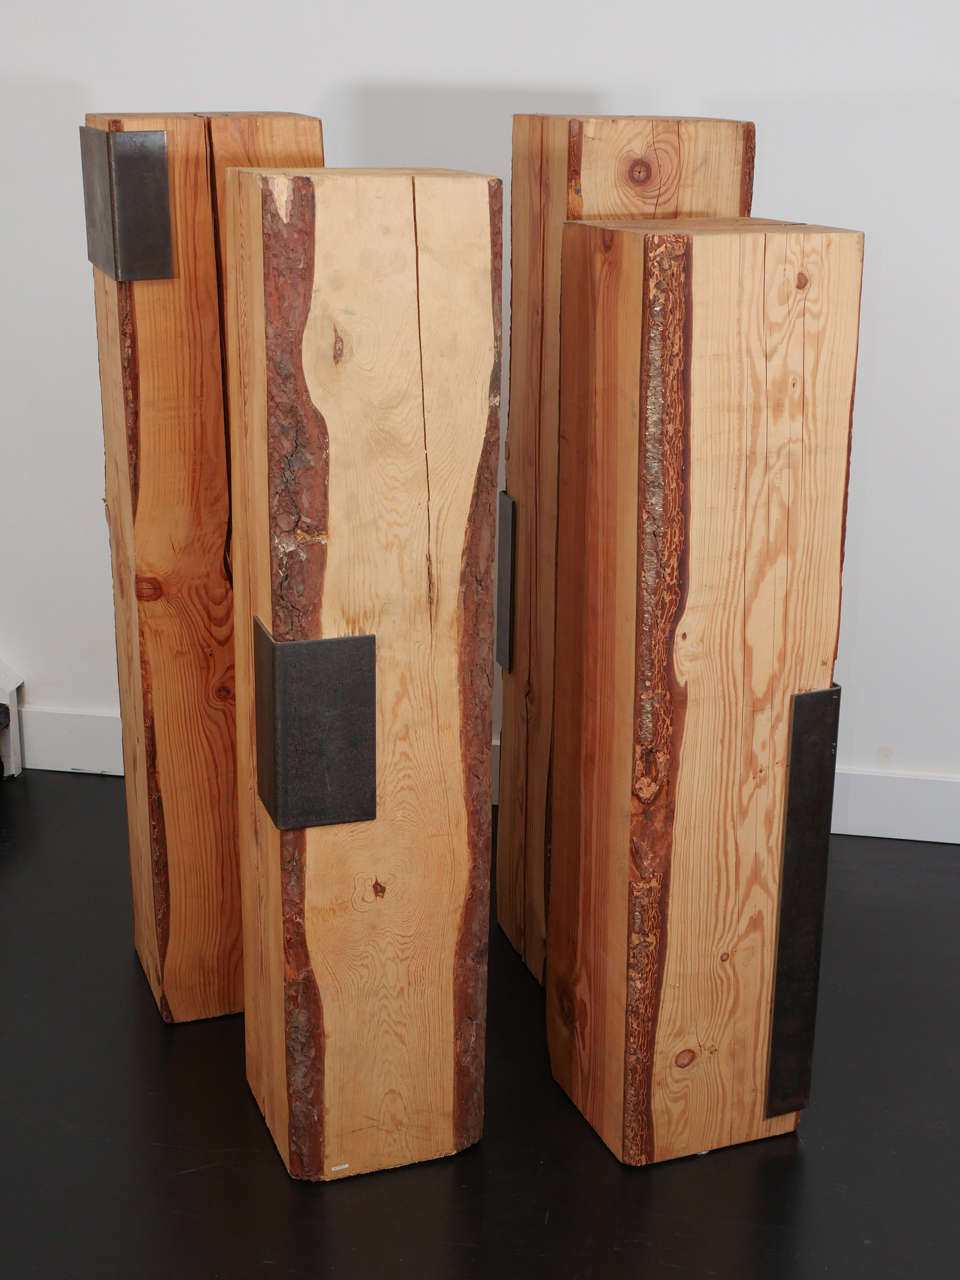 Sculptural pedestals by design duo Garouste and Bonetti, produced by Cat Berro. Raw pine with iron details. The pedestals were used to display silver pieces by Franco-Russian object designer Goudji in Orleans. Very strong presence and art pieces on